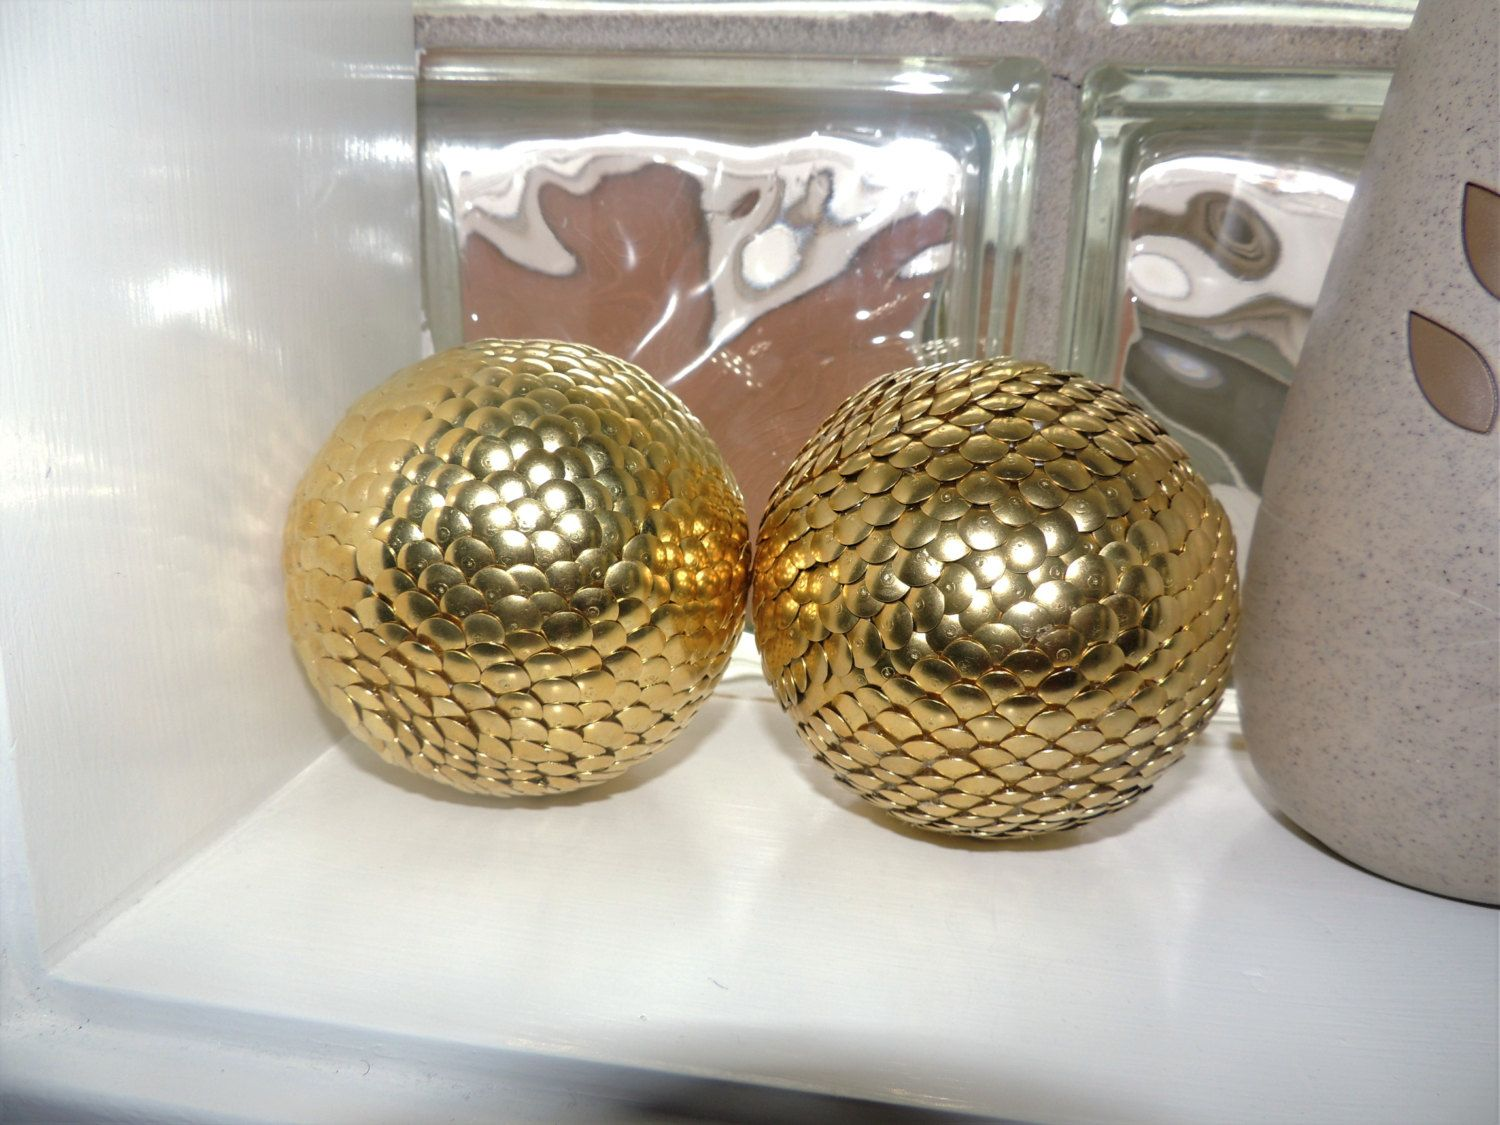 Gold decorative ball gold vase filler gold sphere by gold decorative ball gold vase filler gold sphere by poshdazzlecreations on etsy reviewsmspy